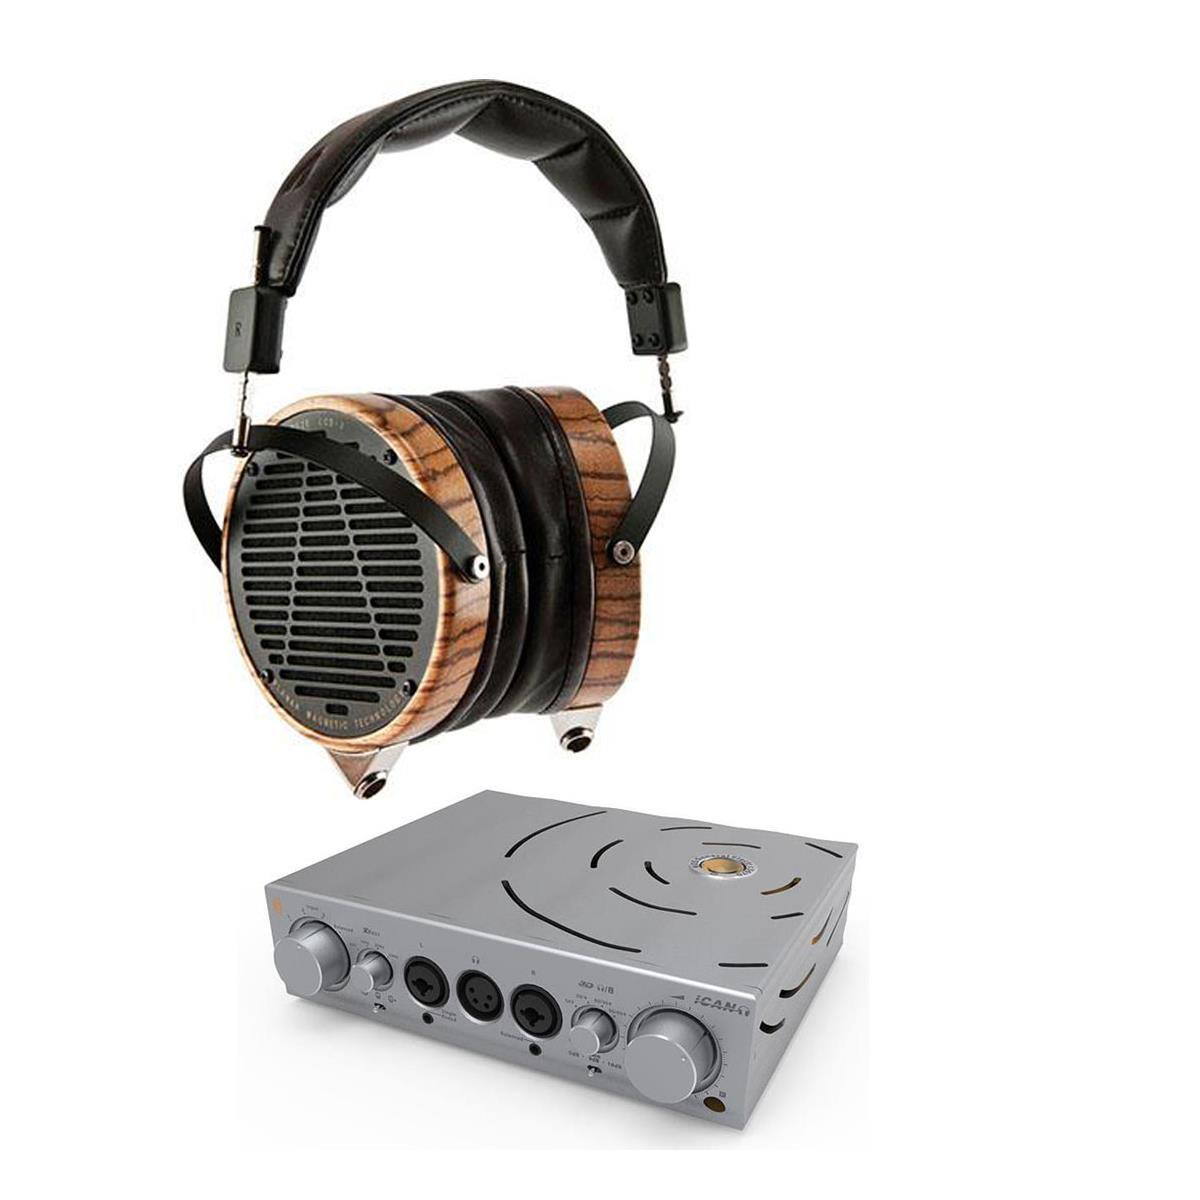 iFi Pro iCAN Amp + Audeze LCD-3 $2299 or iFi Pro iCAN + iESL Electrostatic Energizer $2399 + free shipping